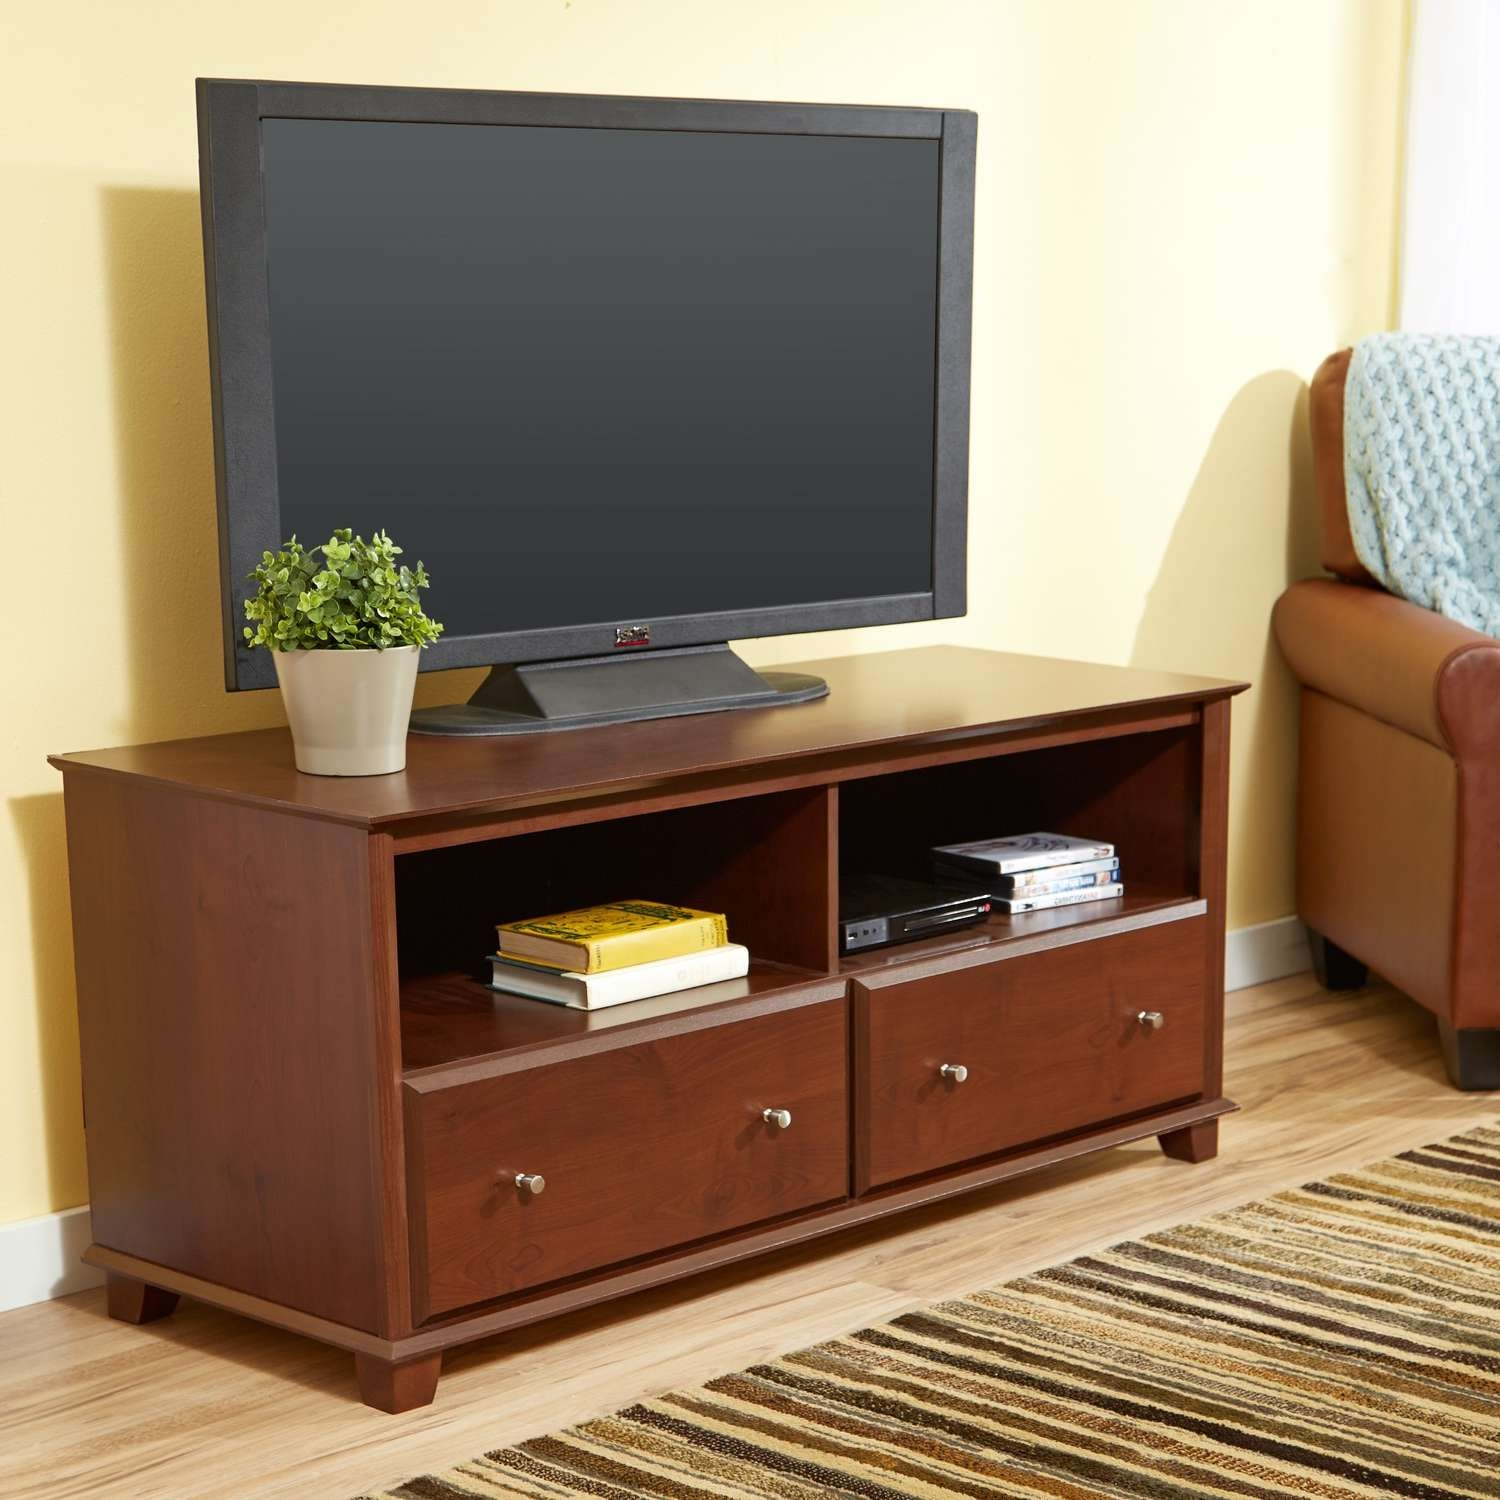 Furniture: Winsome Vivacious Mesmerizing Brown Cabinet Apothecary In Light Colored Tv Stands (View 6 of 15)